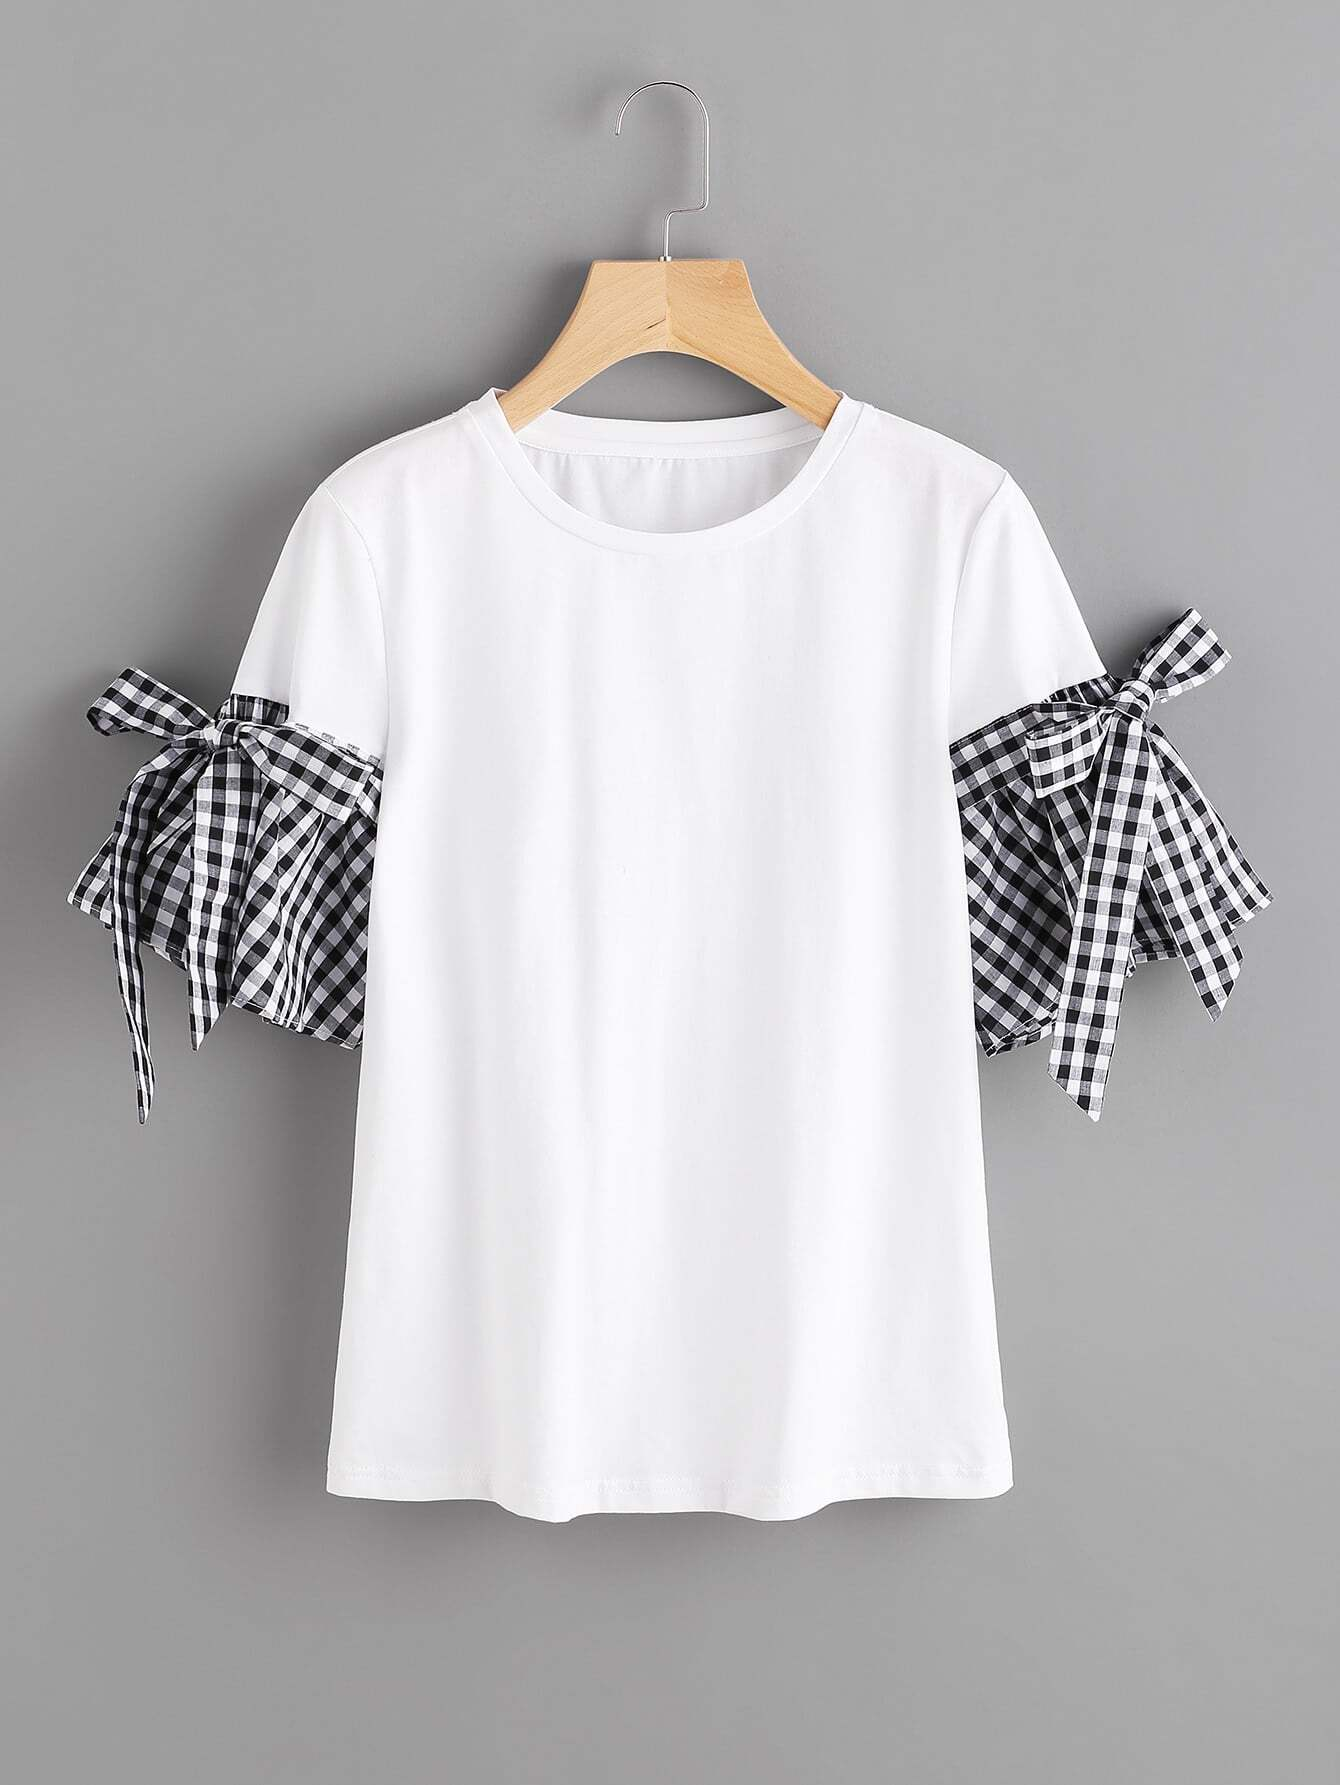 Bow Detail Gingham Bell Cuff T-shirt contrast lace cuff frill detail smocked gingham dress